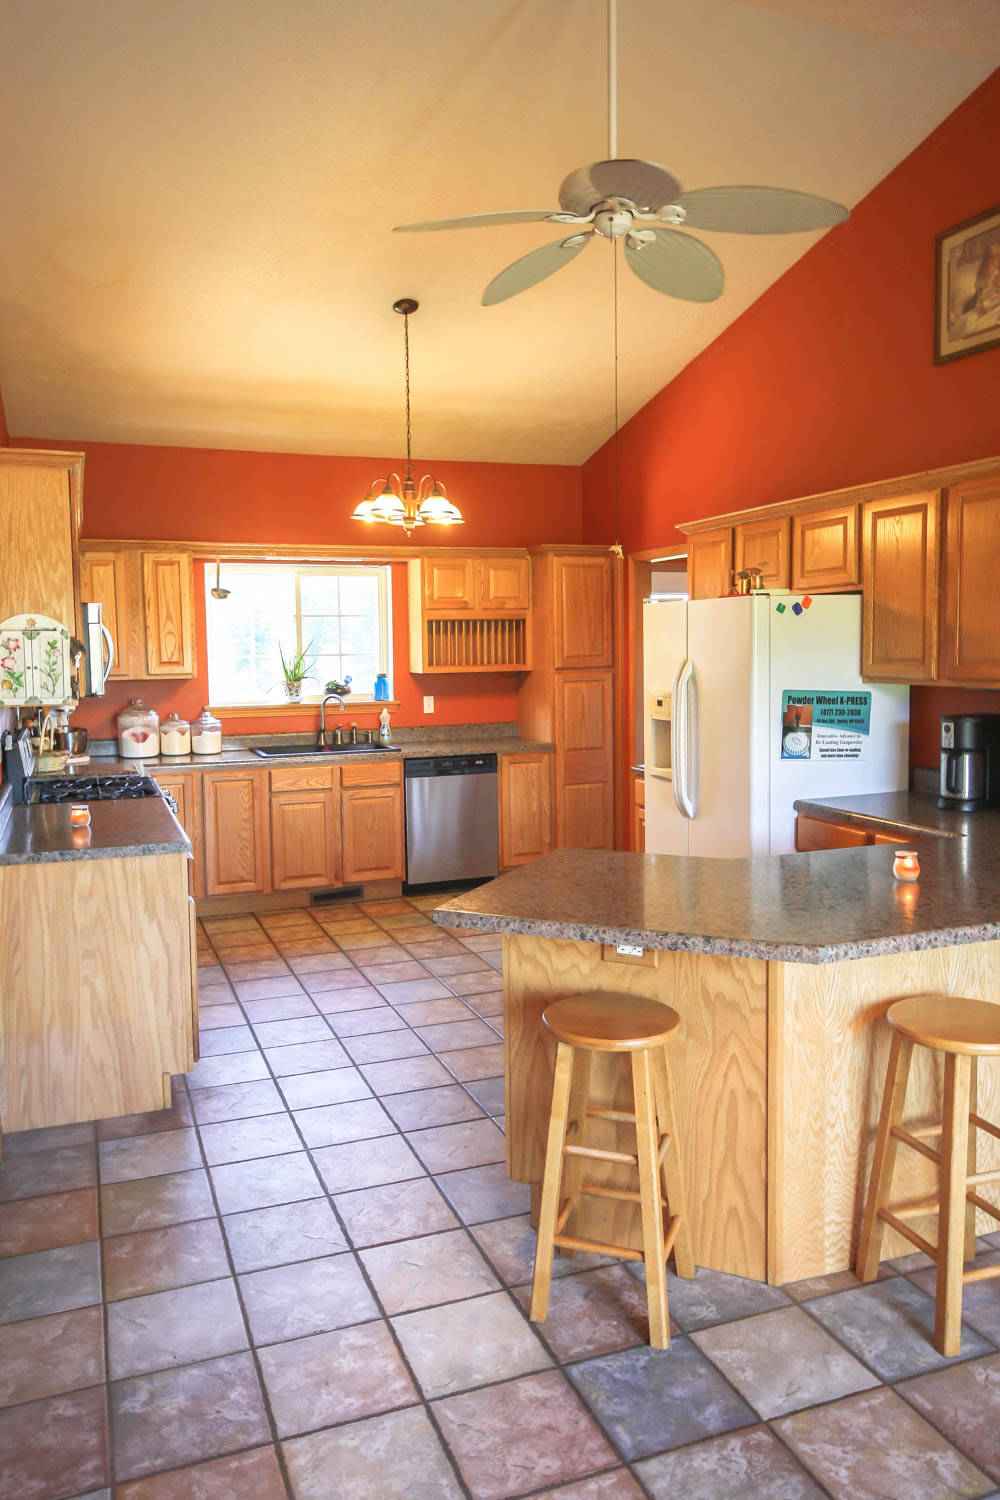 House for Sale in Billings, MO